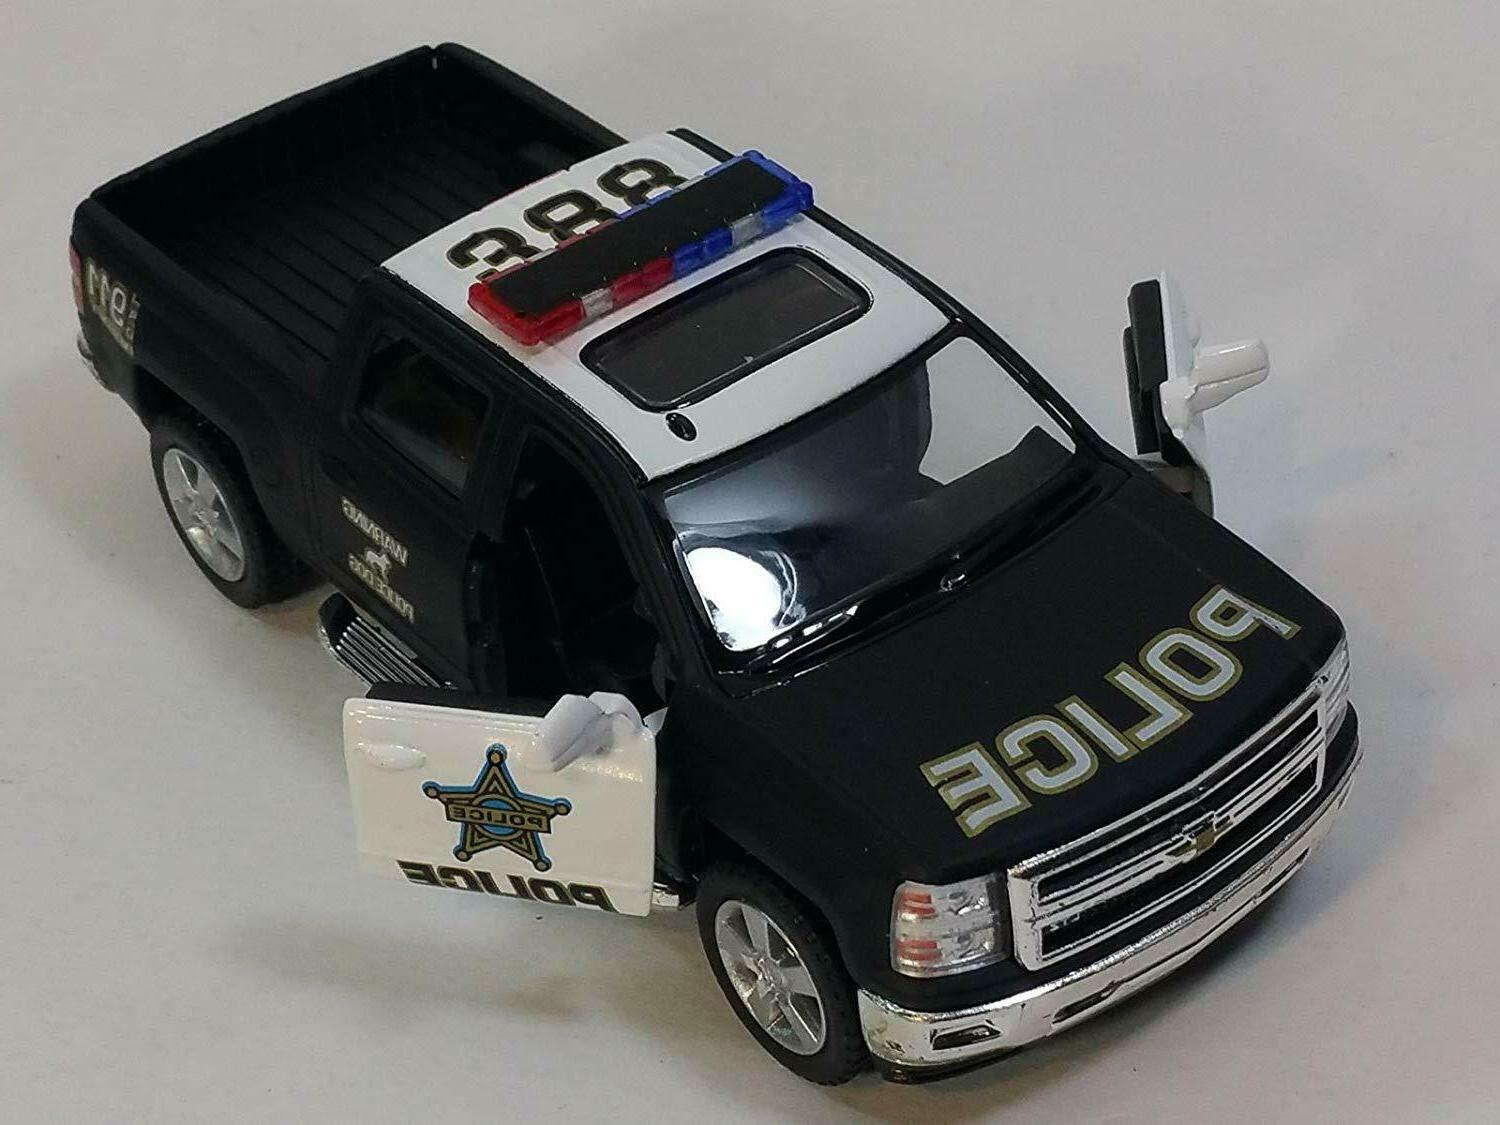 Big Sale Unit Car Diecast Toy Super Gift for